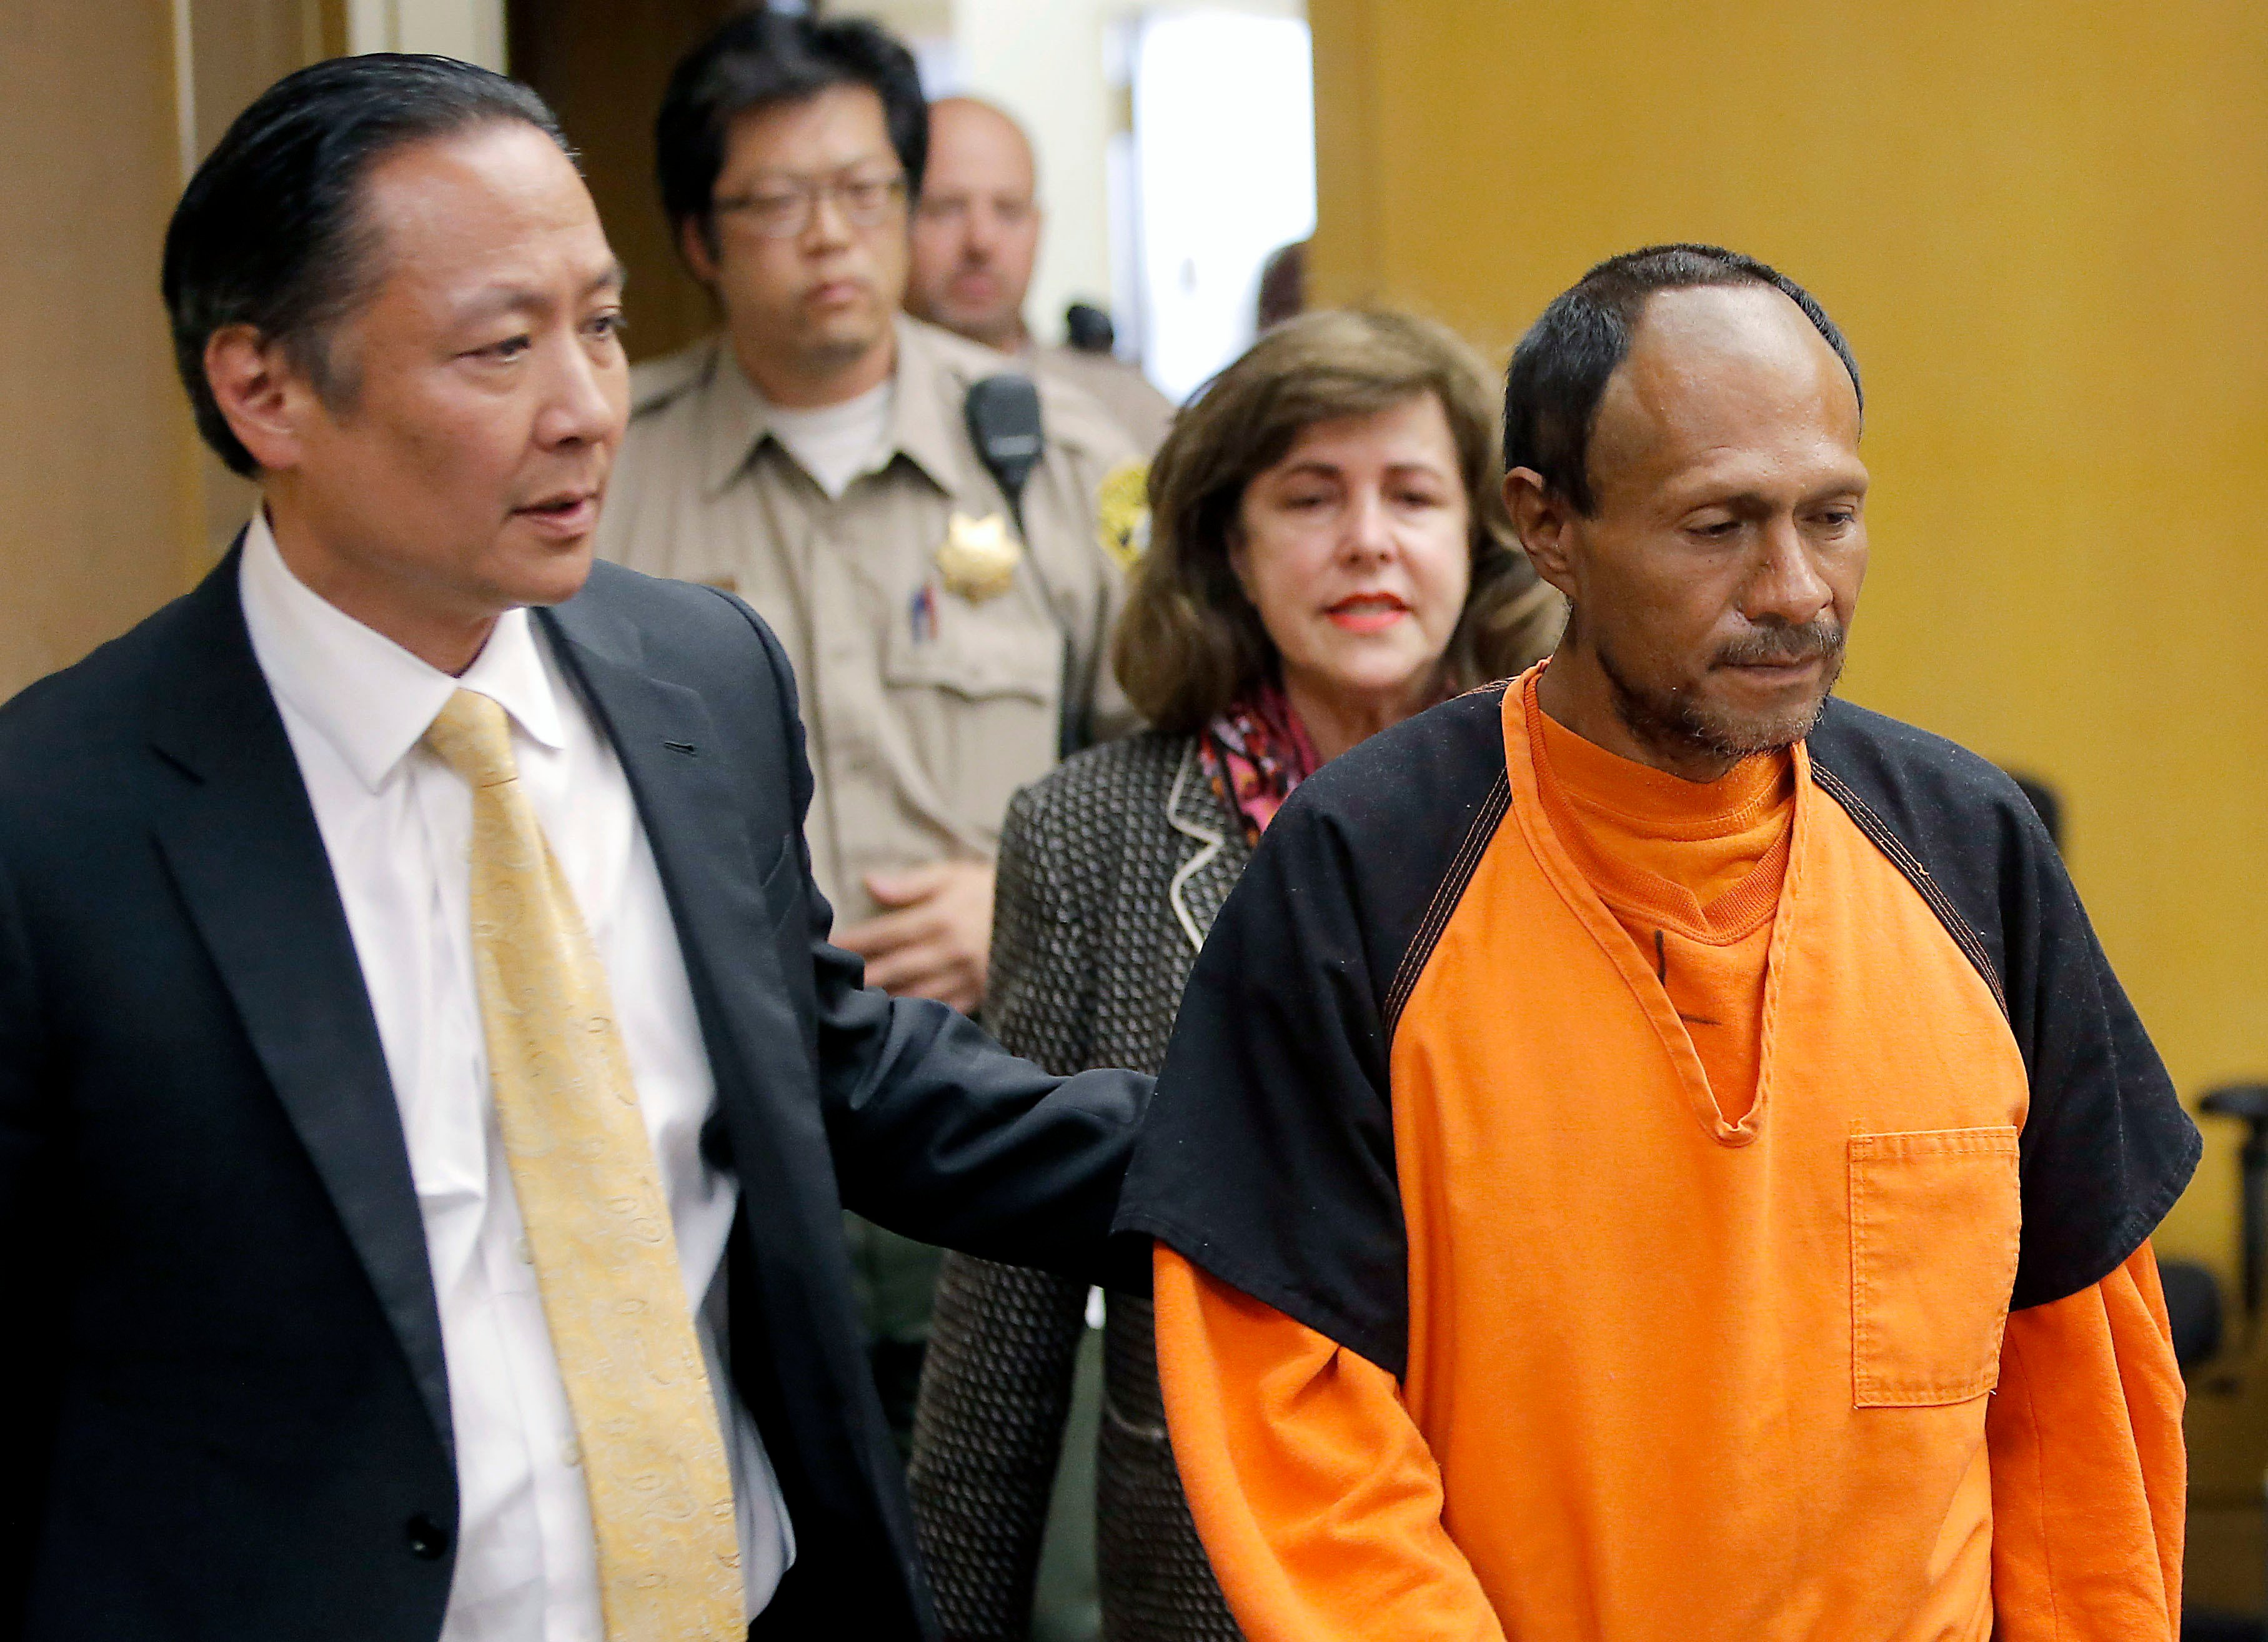 FILE - In this July 7, 2015 file photo, Jose Ines Garcia Zarate, right, is led into the courtroom by San Francisco Public Defender Jeff Adachi, left, and Assistant District Attorney Diana Garciaor, center, for his arraignment.